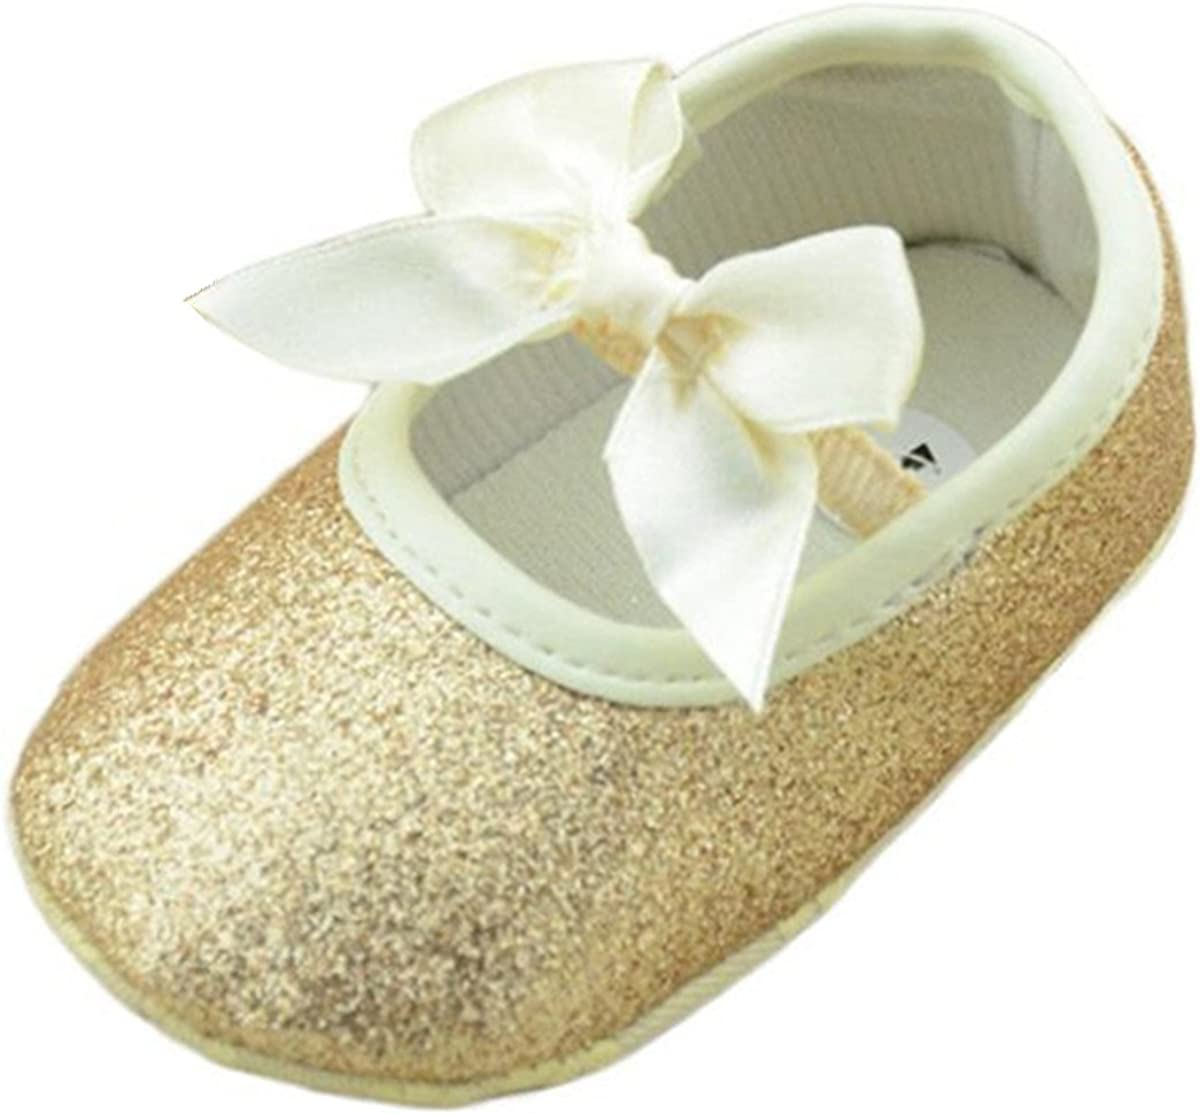 12cm//6-12M, Gold Perman Baby Girls Infant Glitter Shoes Sneaker Anti-Slip Soft Sole Toddler